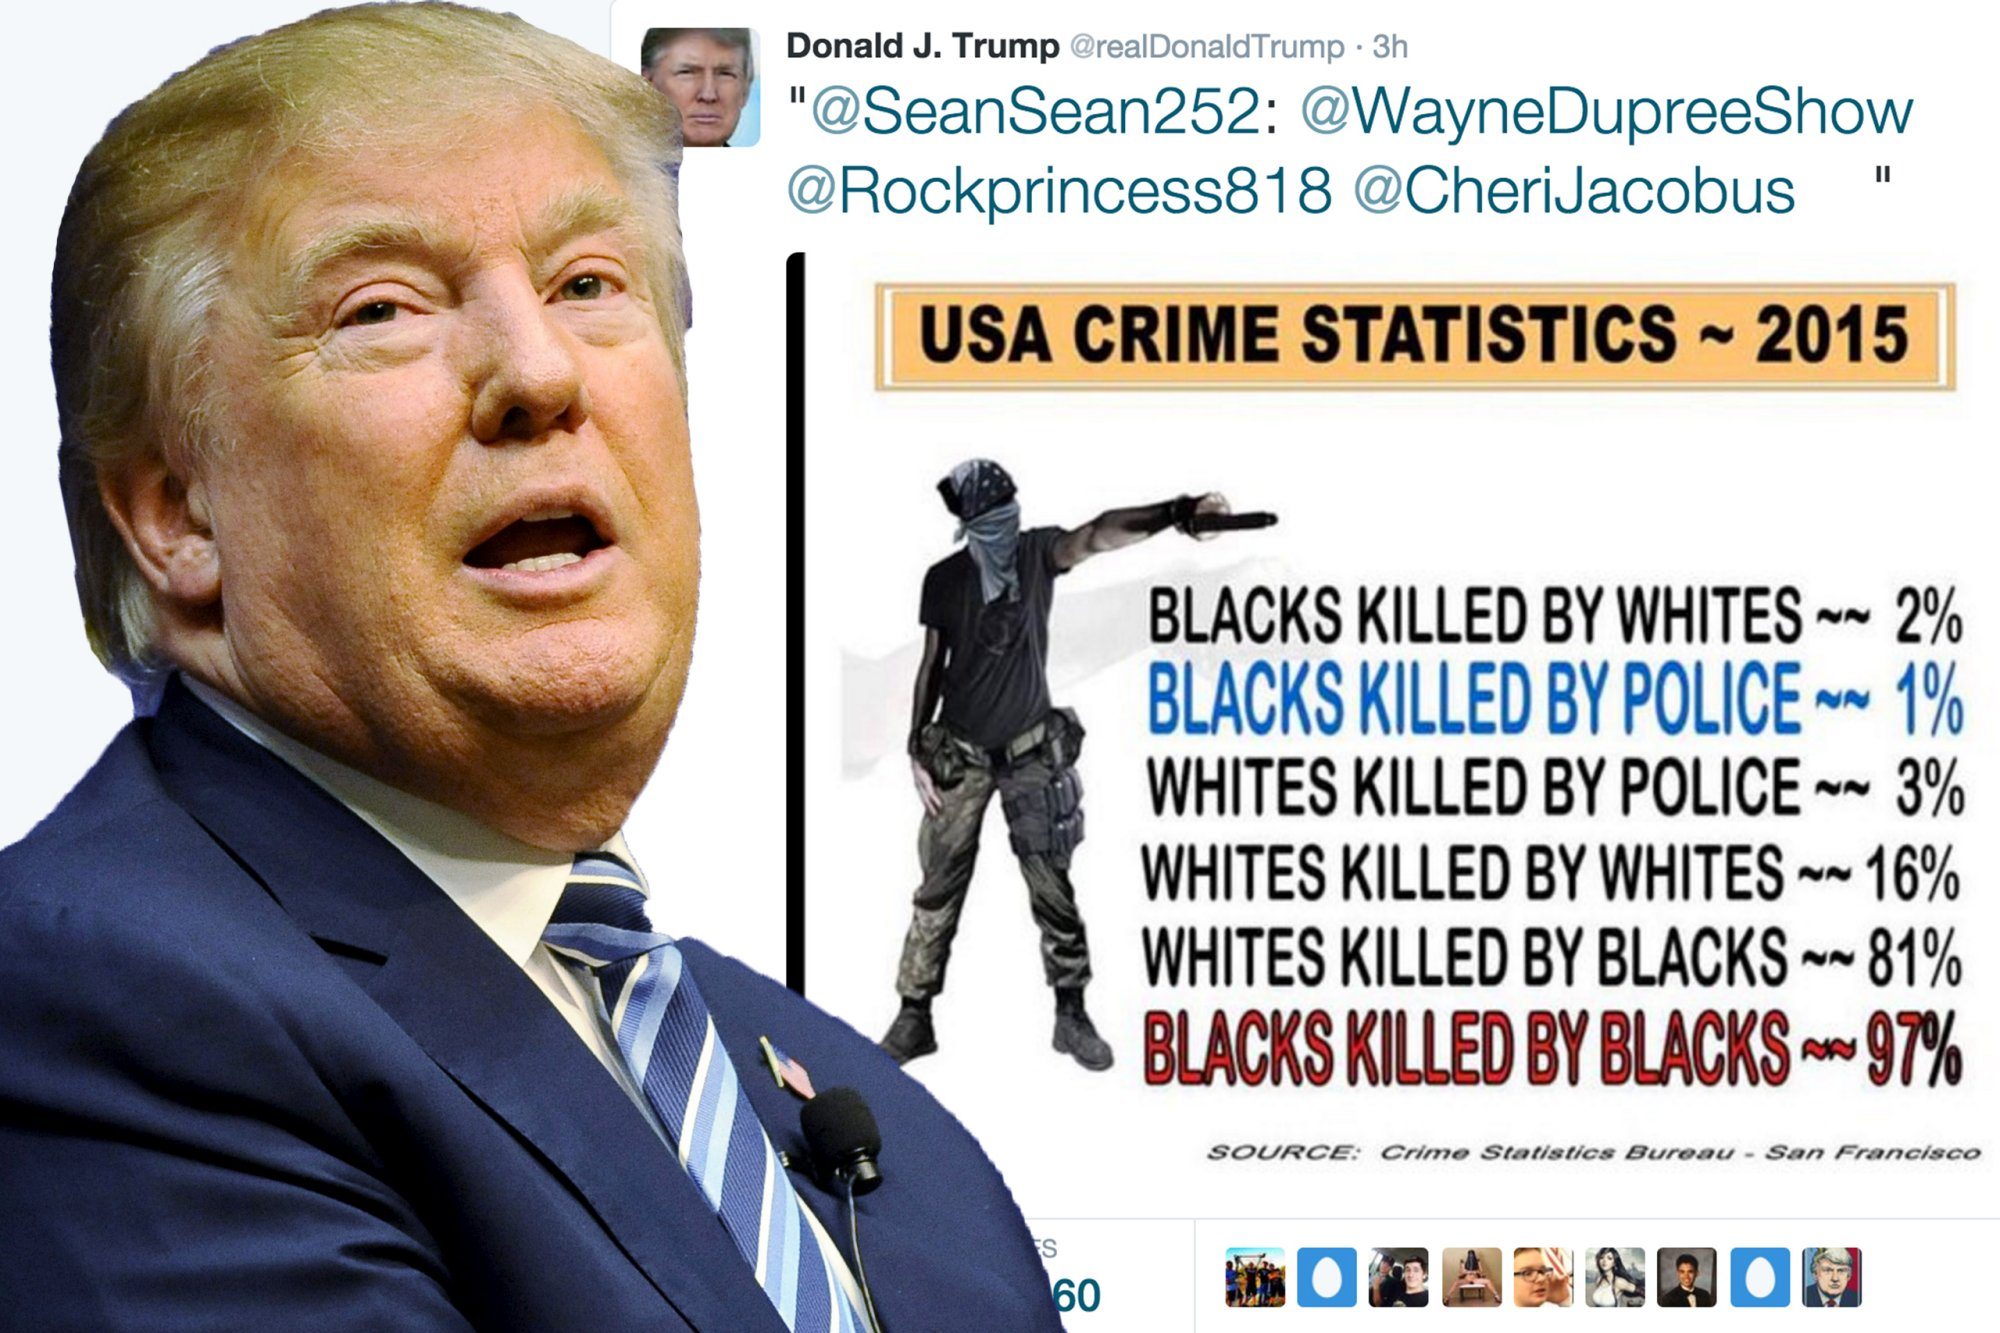 donalds murder facts get trumped again 2017 images